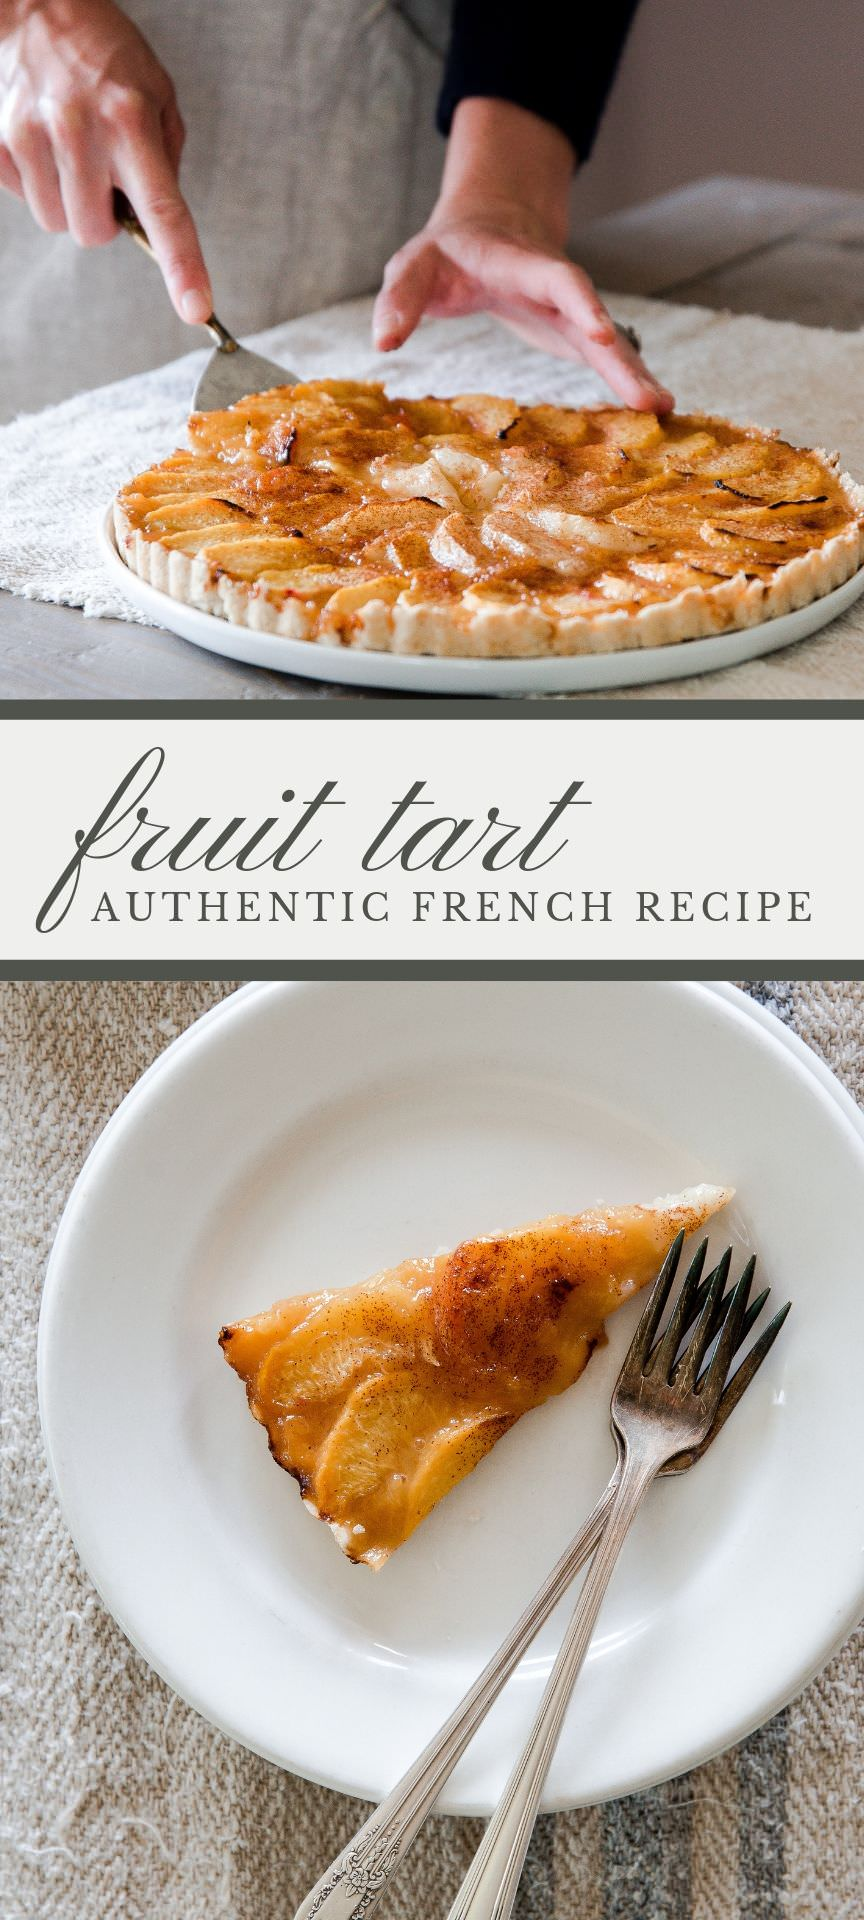 An authentic French tart recipe that can be made with any type of fruit or jelly! This is incredibly easy! #fruittart #tartrecipe #frenchdessert #brunchideas